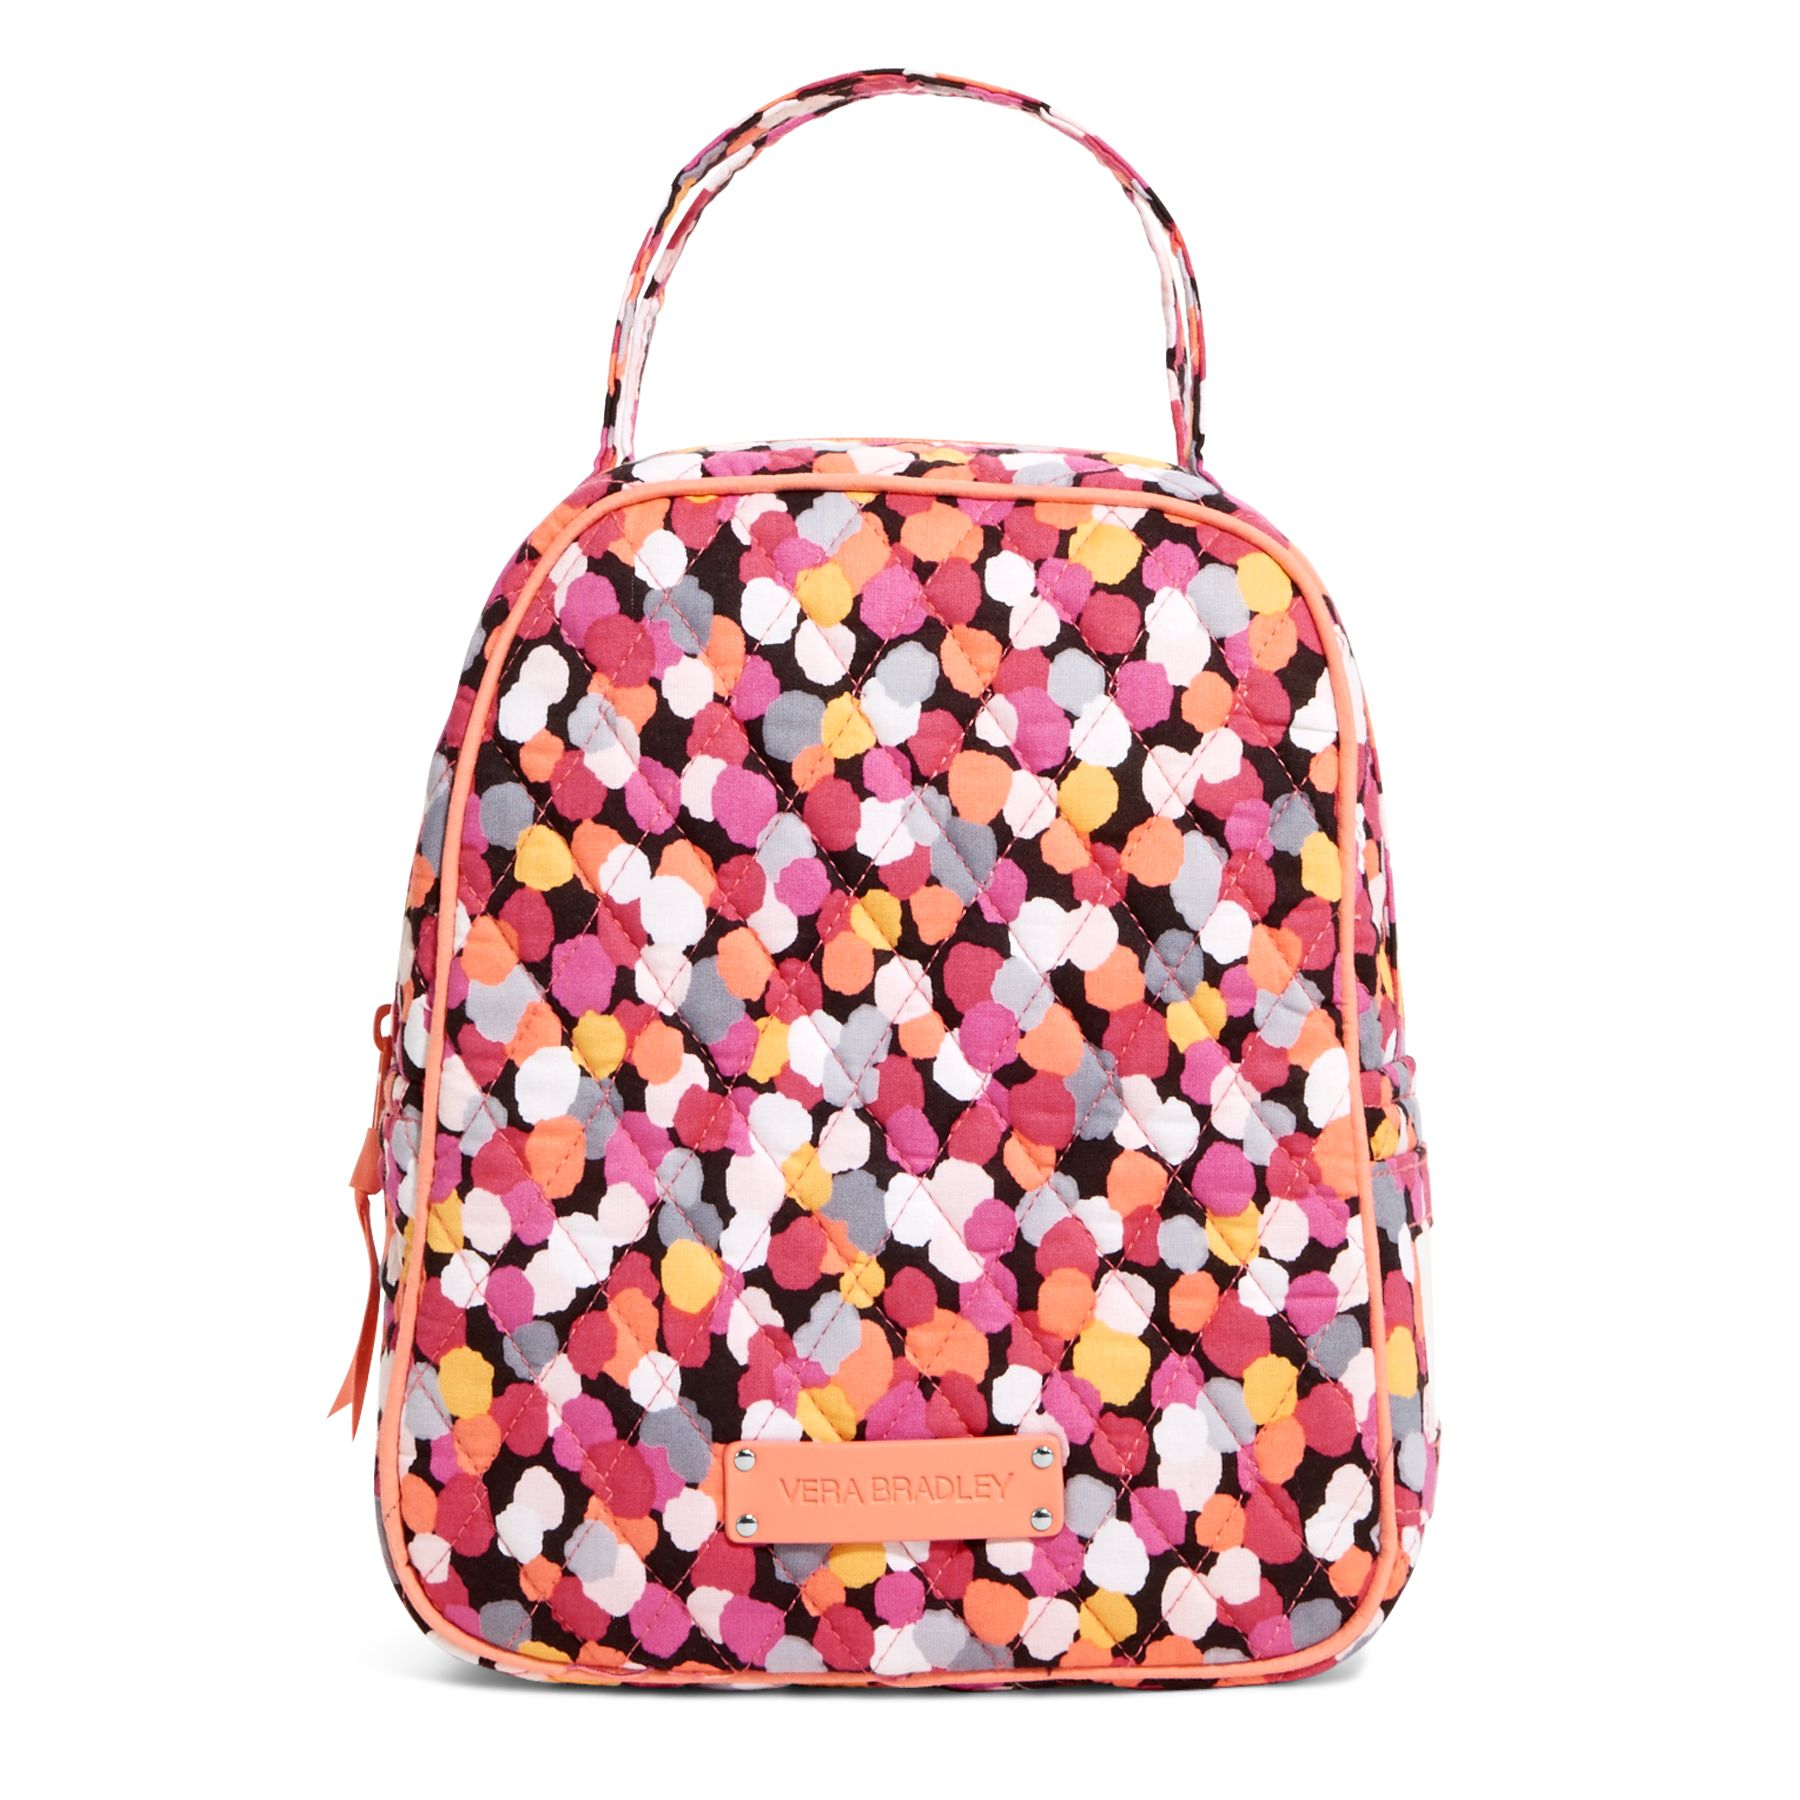 eb0908cdbb 886003298275. Vera Bradley Lunch Bunch in Pixie Confetti. EAN-13 Barcode of  UPC 886003254912. 886003254912